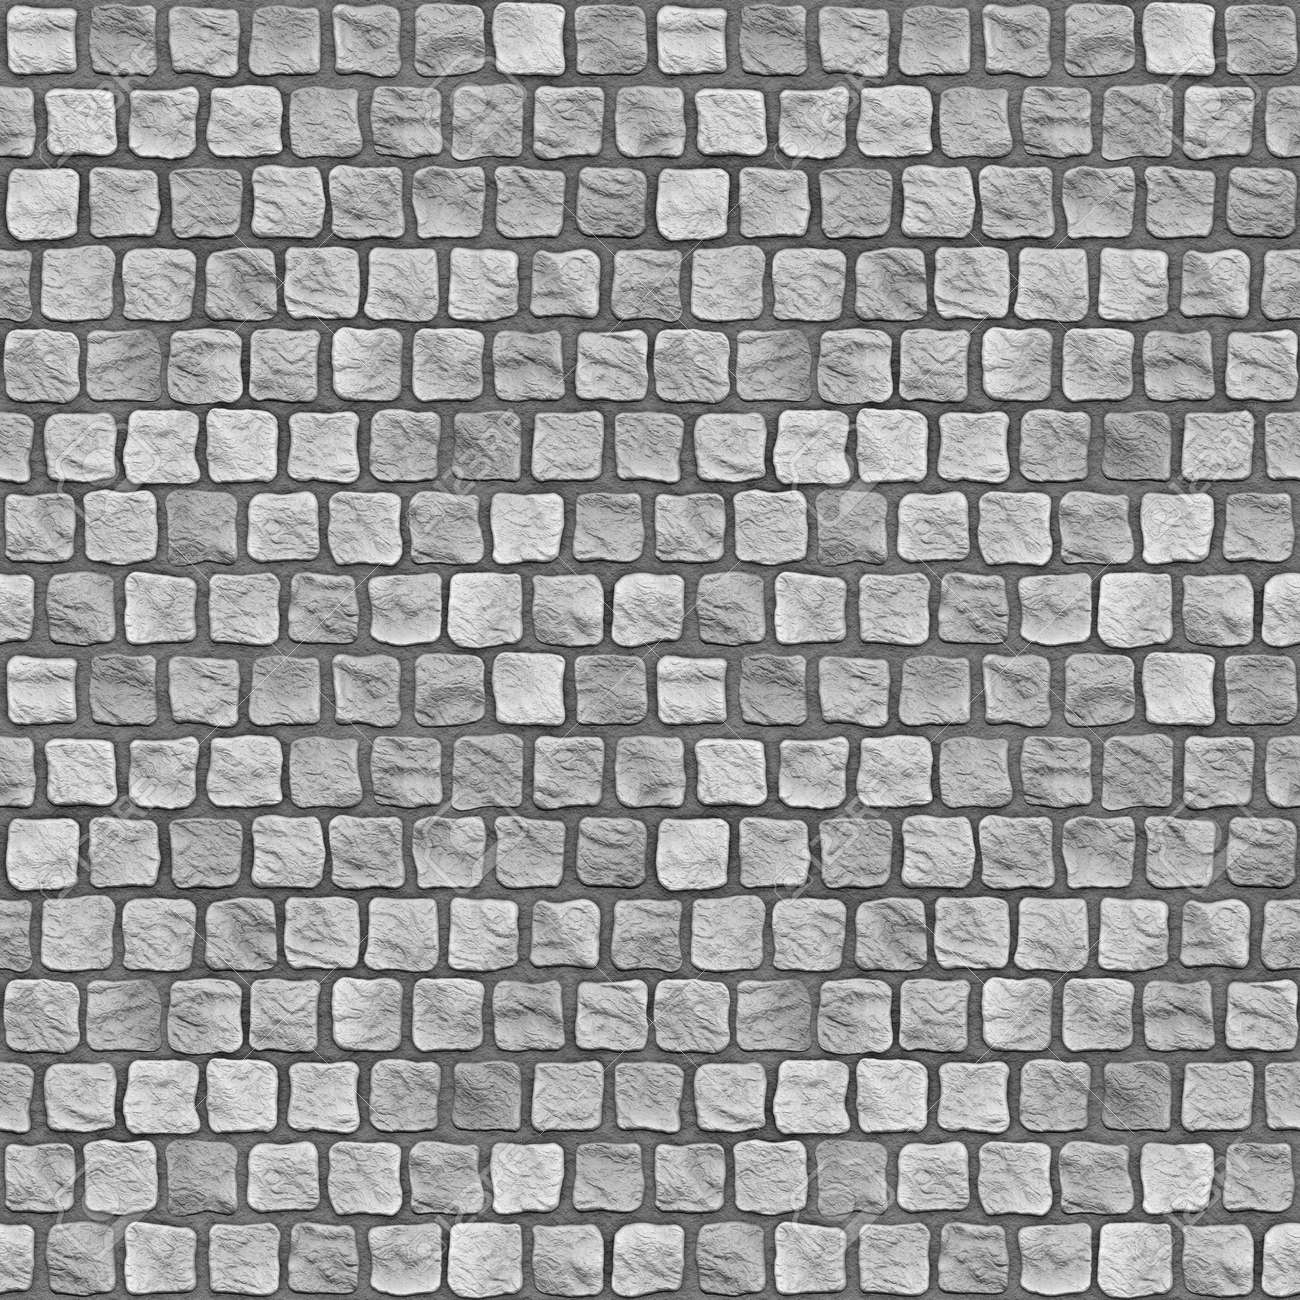 A Seamless Tiling Texture Illustration Of Cobblestones Stock. Cobblestone Texture Seamless